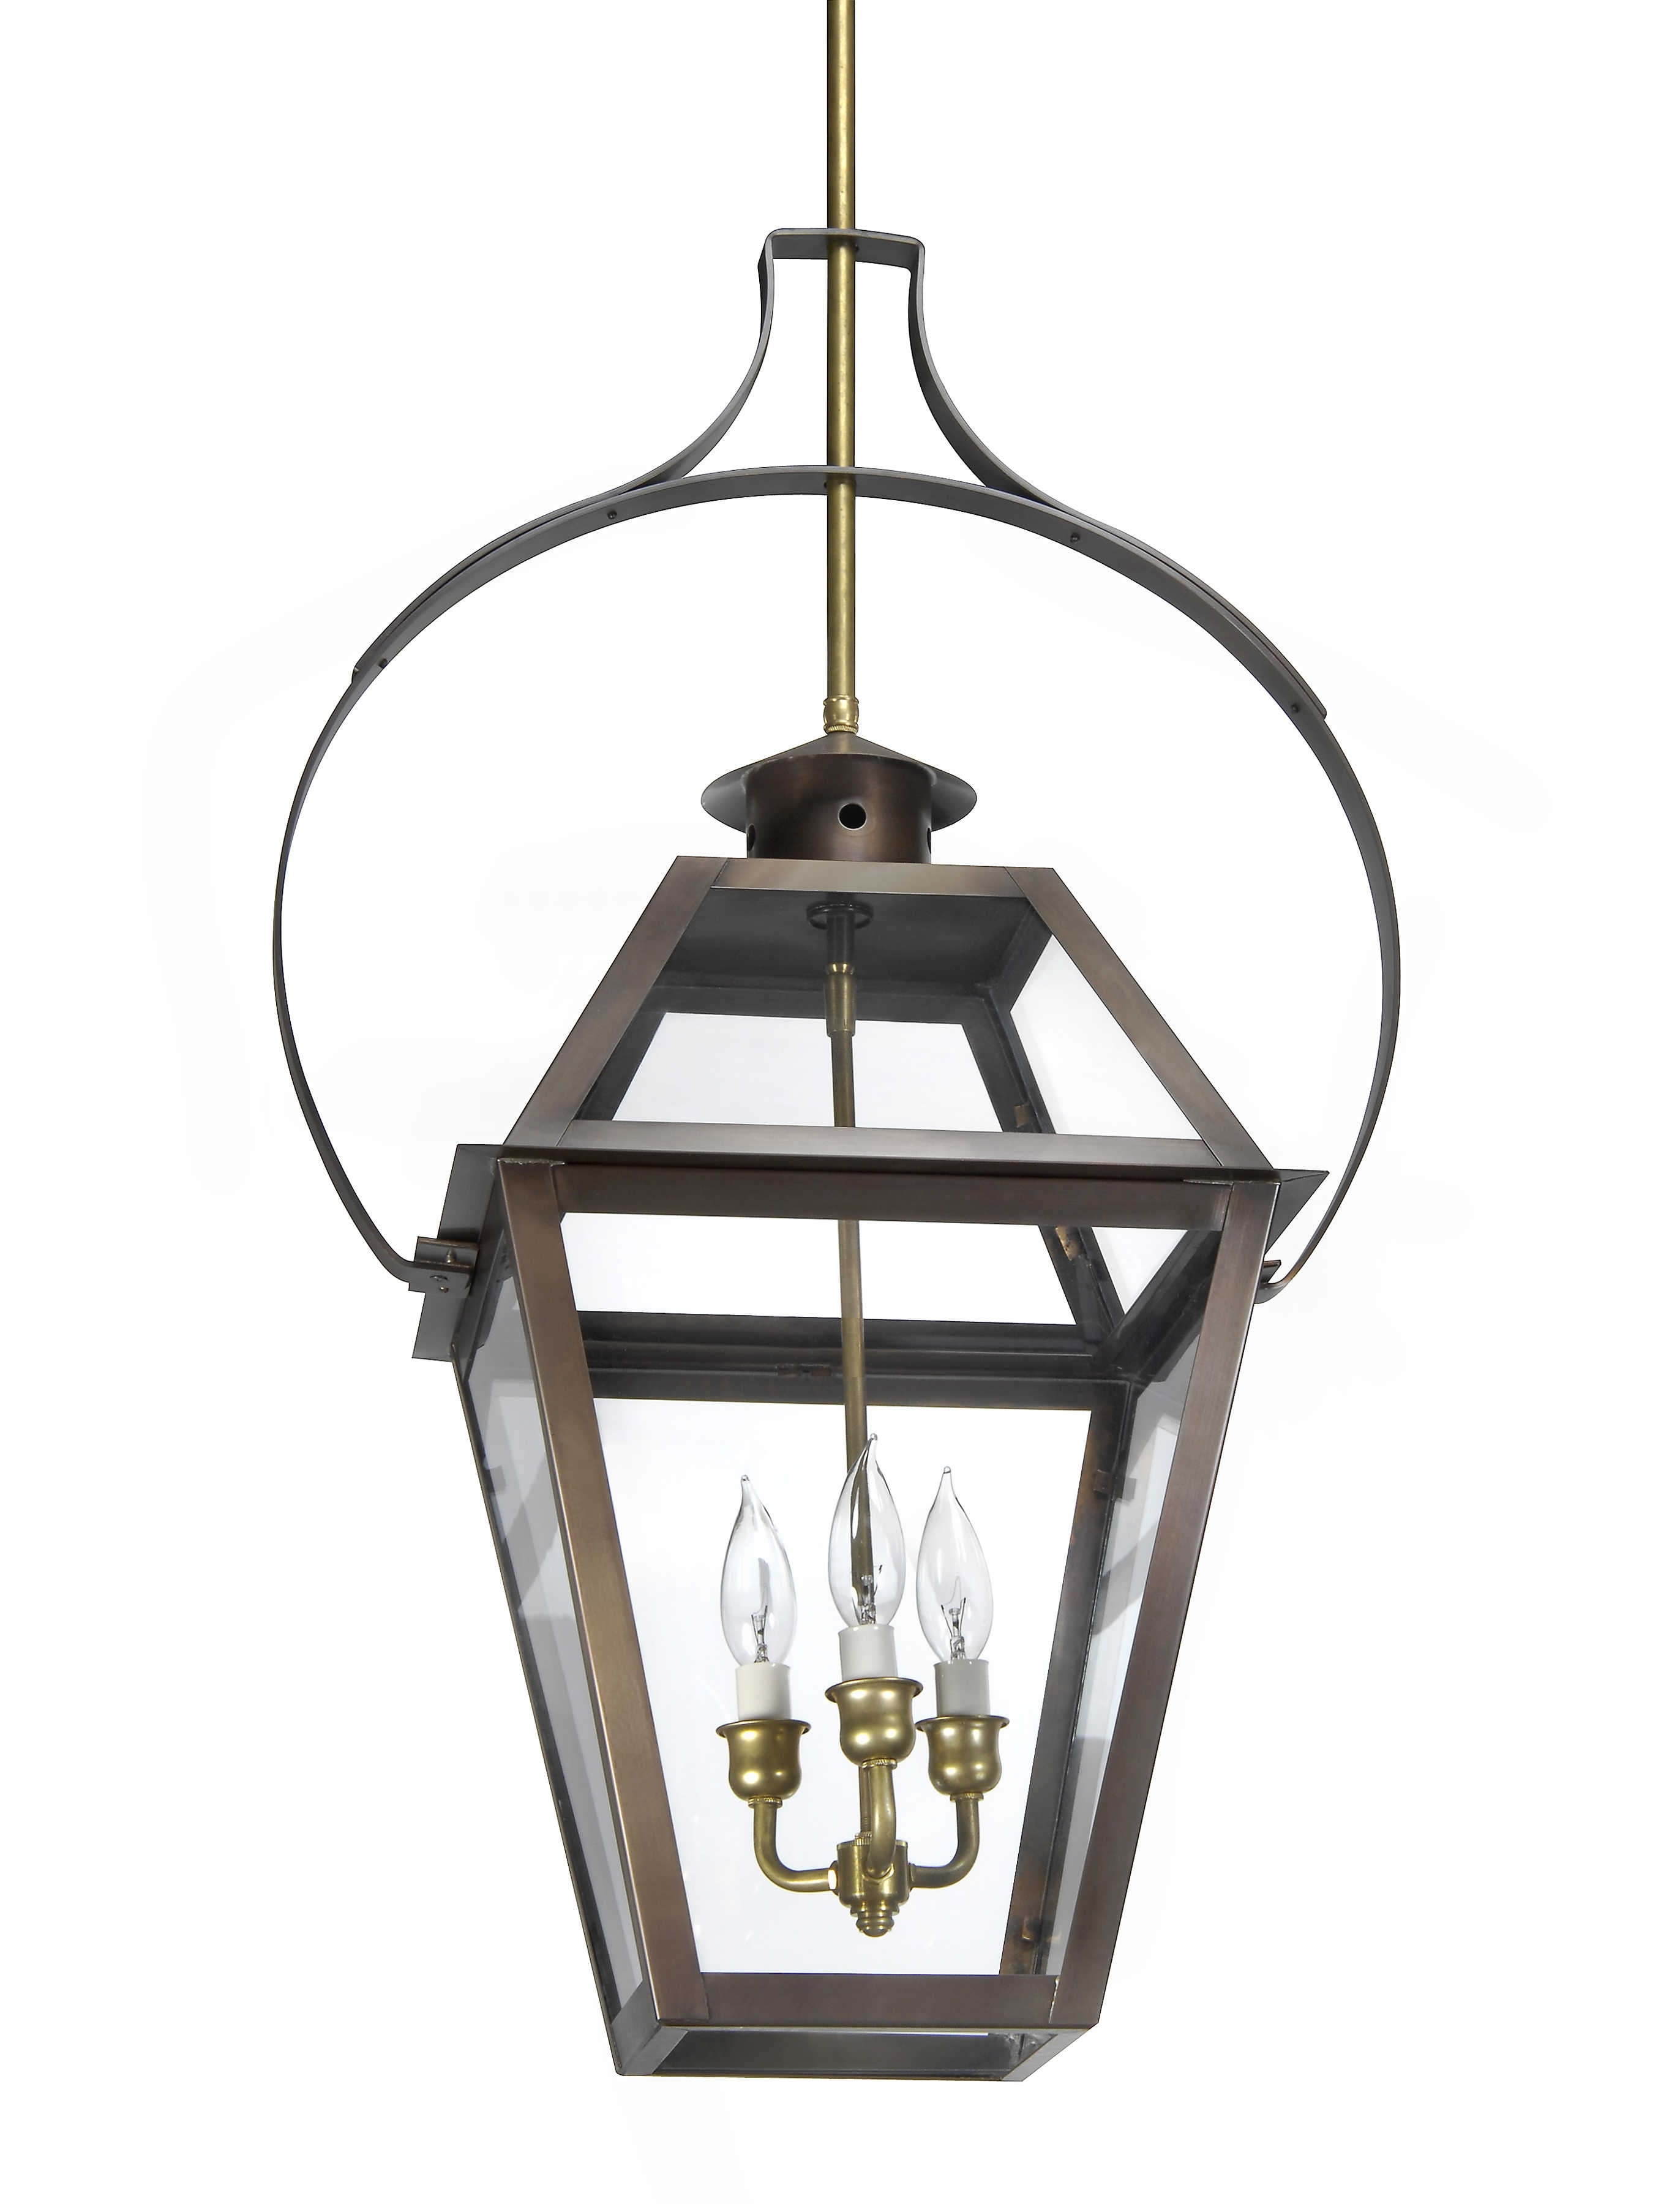 Charleston Collection | Ch-23 Hanging Yoke Light– Lantern & Scroll with regard to Copper Outdoor Electric Lanterns (Image 2 of 20)